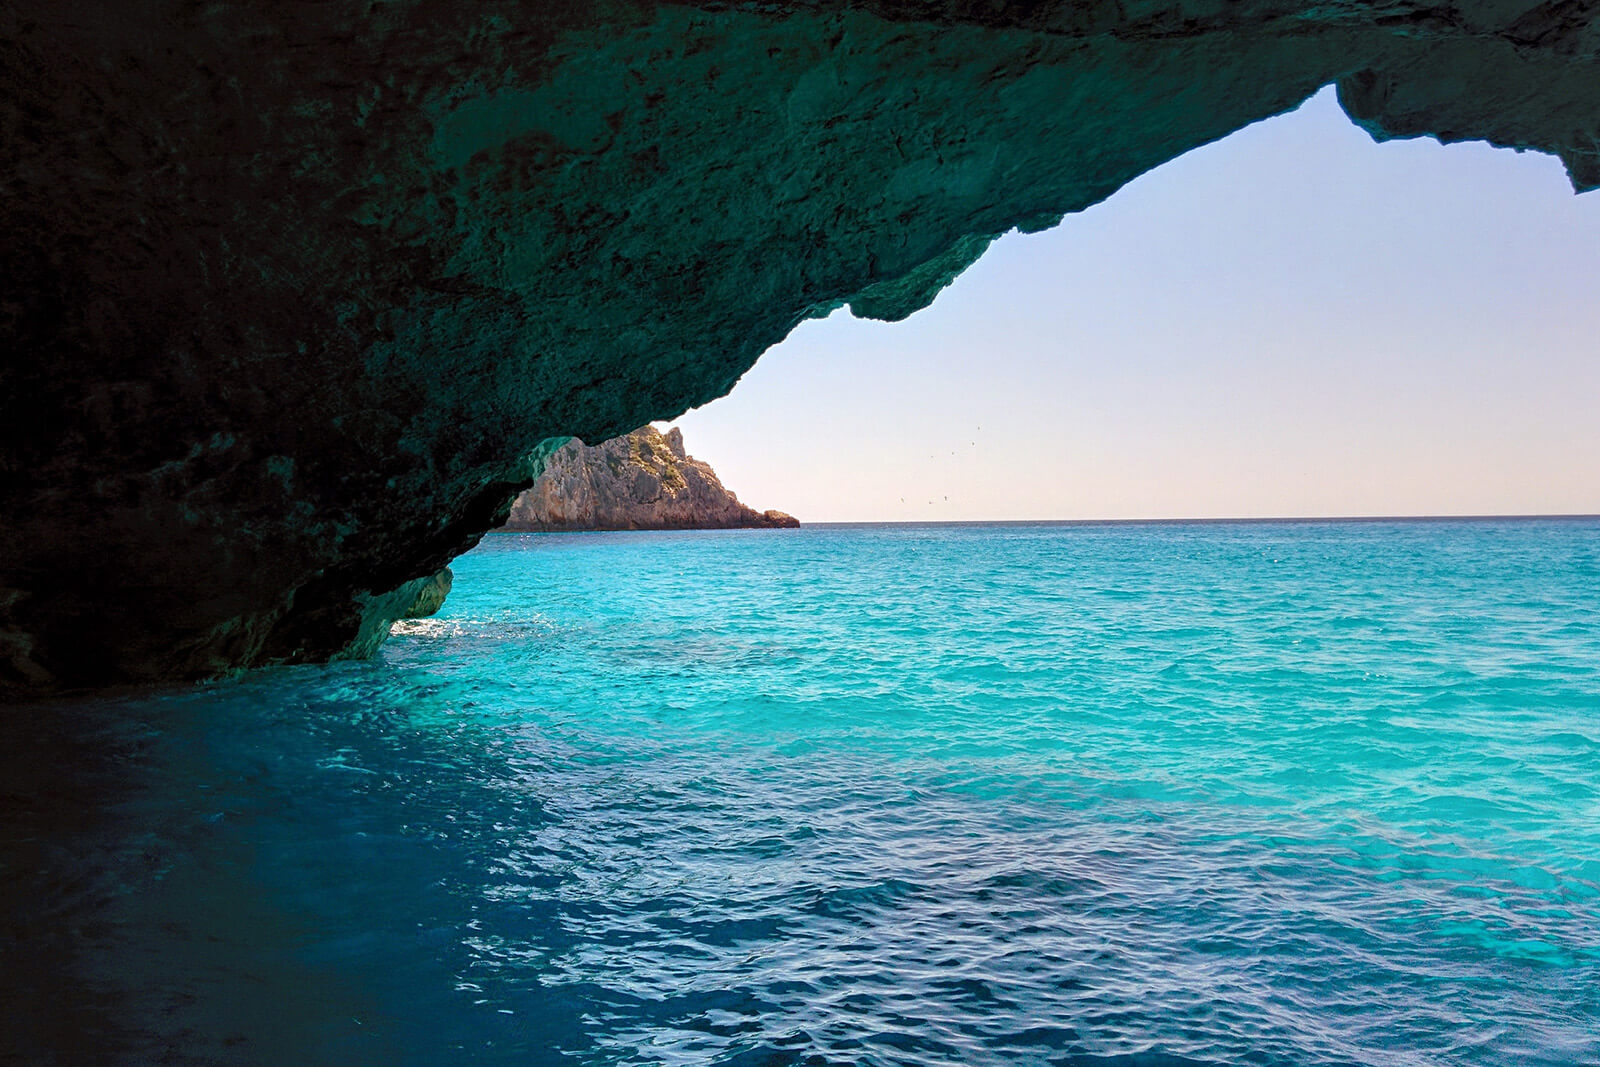 The beautiful Blue Caves of Zakynthos Island, Greece